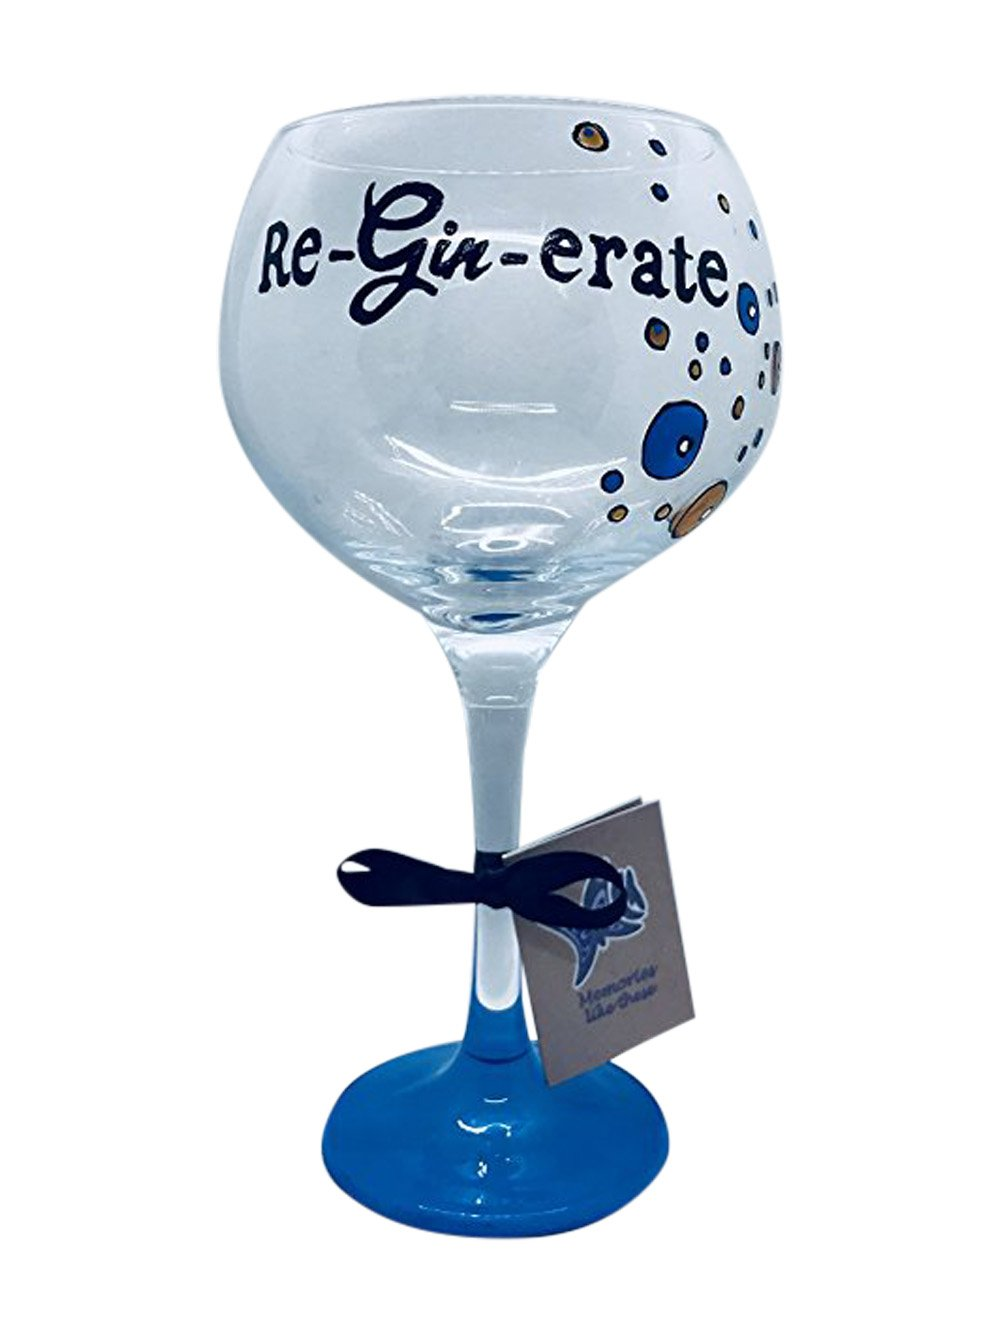 Blue Copa glass, Gin and Tonic Novelty gift, Large Gin And Tonic glass, Reginerate with bubble detail hand painted by memories-like-these